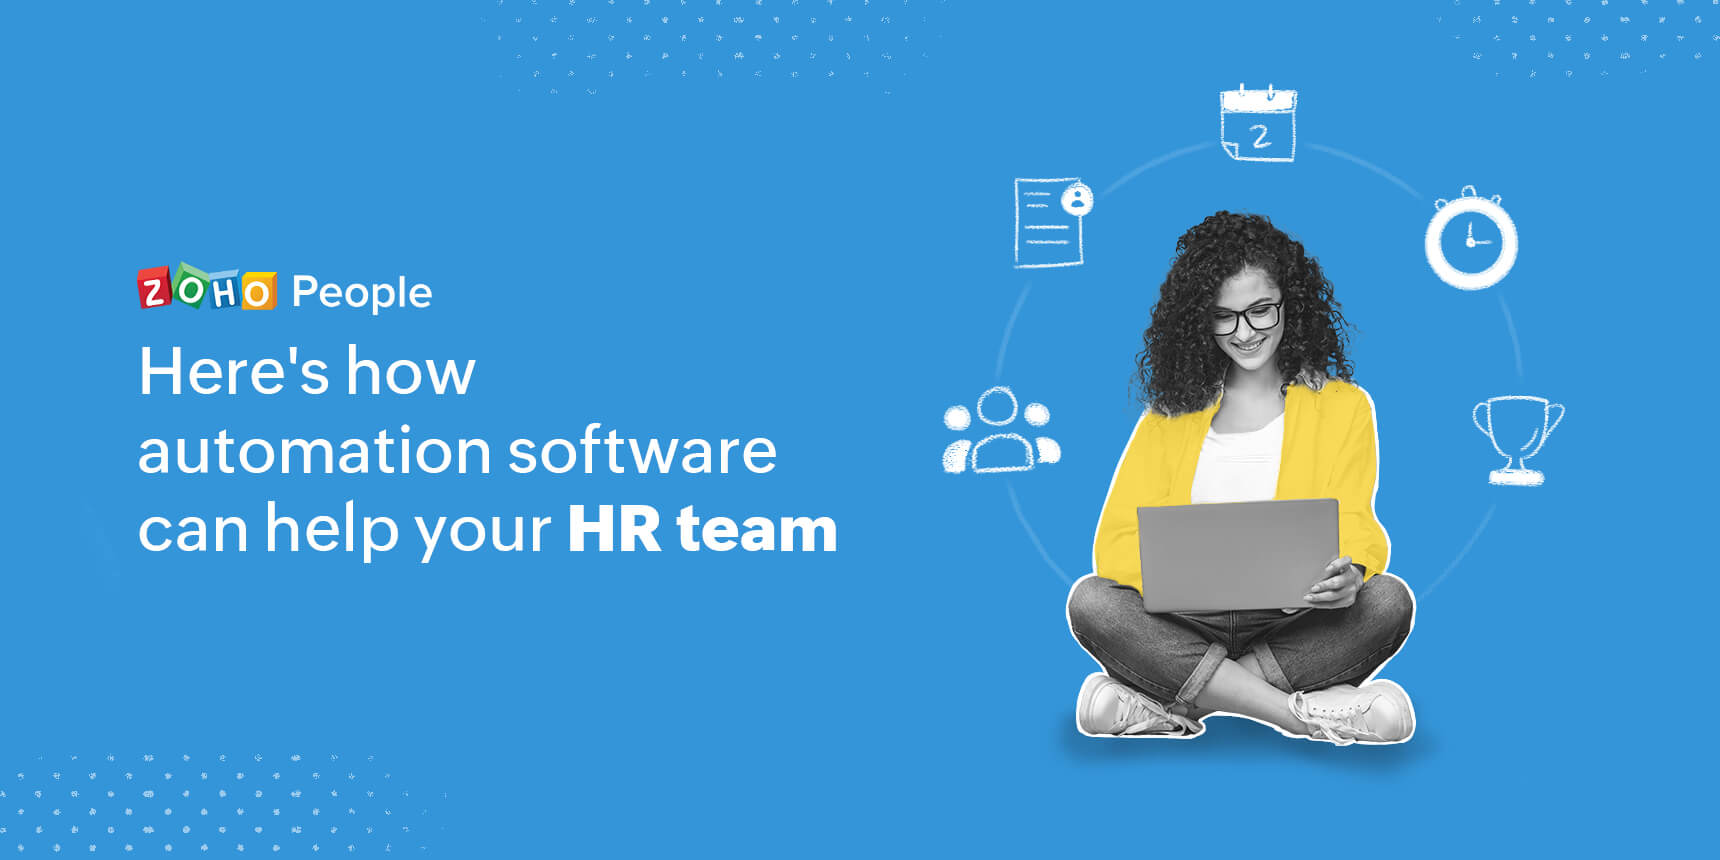 How can HR automation software help HR teams